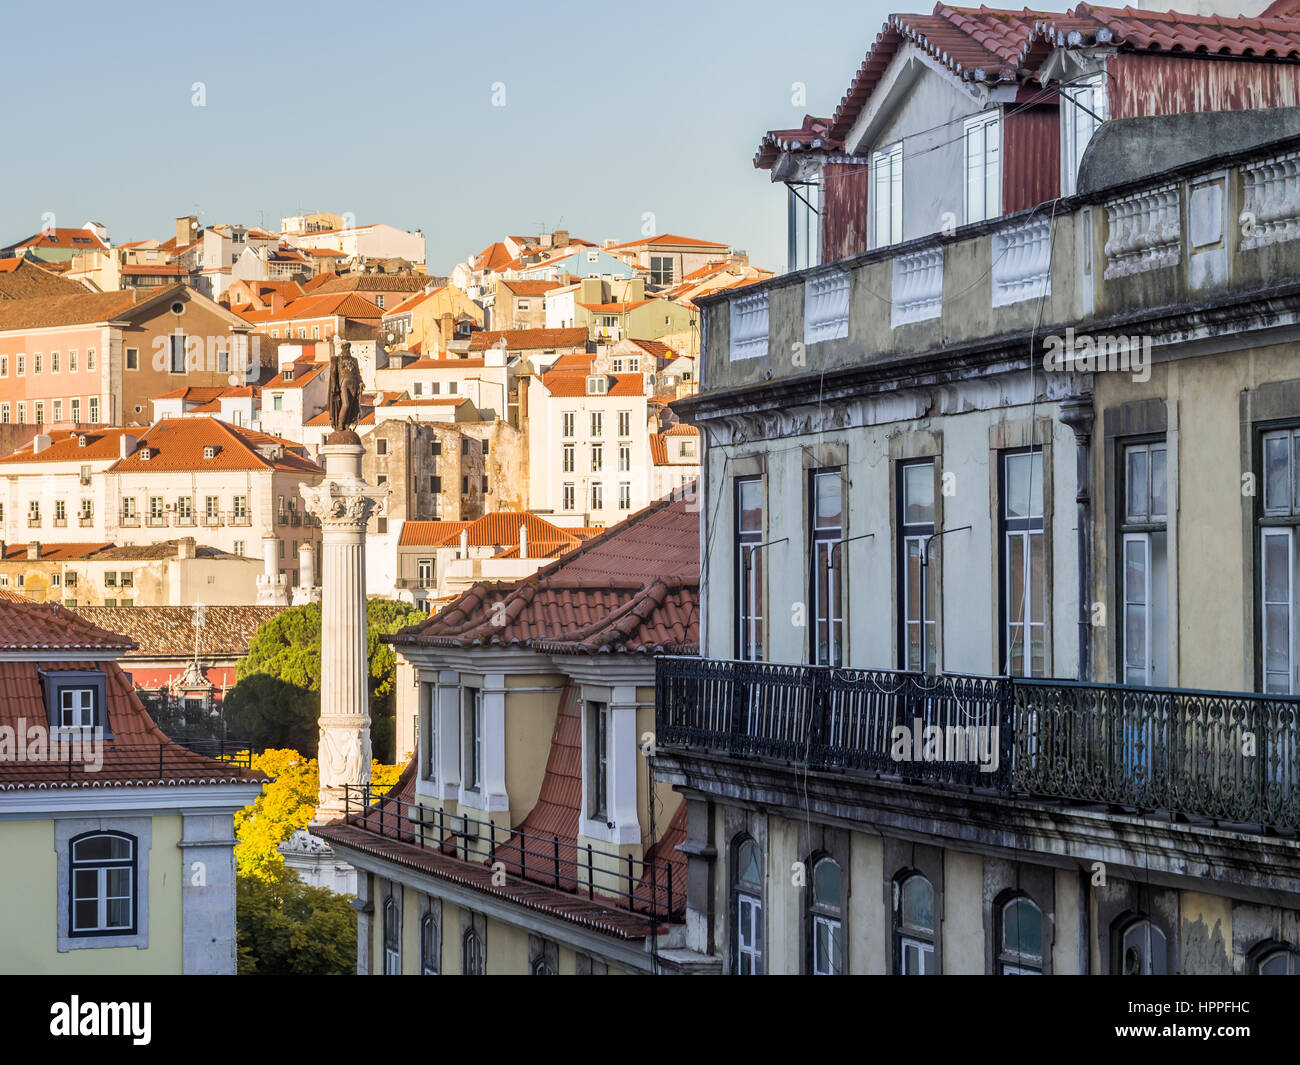 Column of Pedro IV on Rossio Square (Pedro IV Square) in Lisbon, Portugal with surrounding architecture. - Stock Image